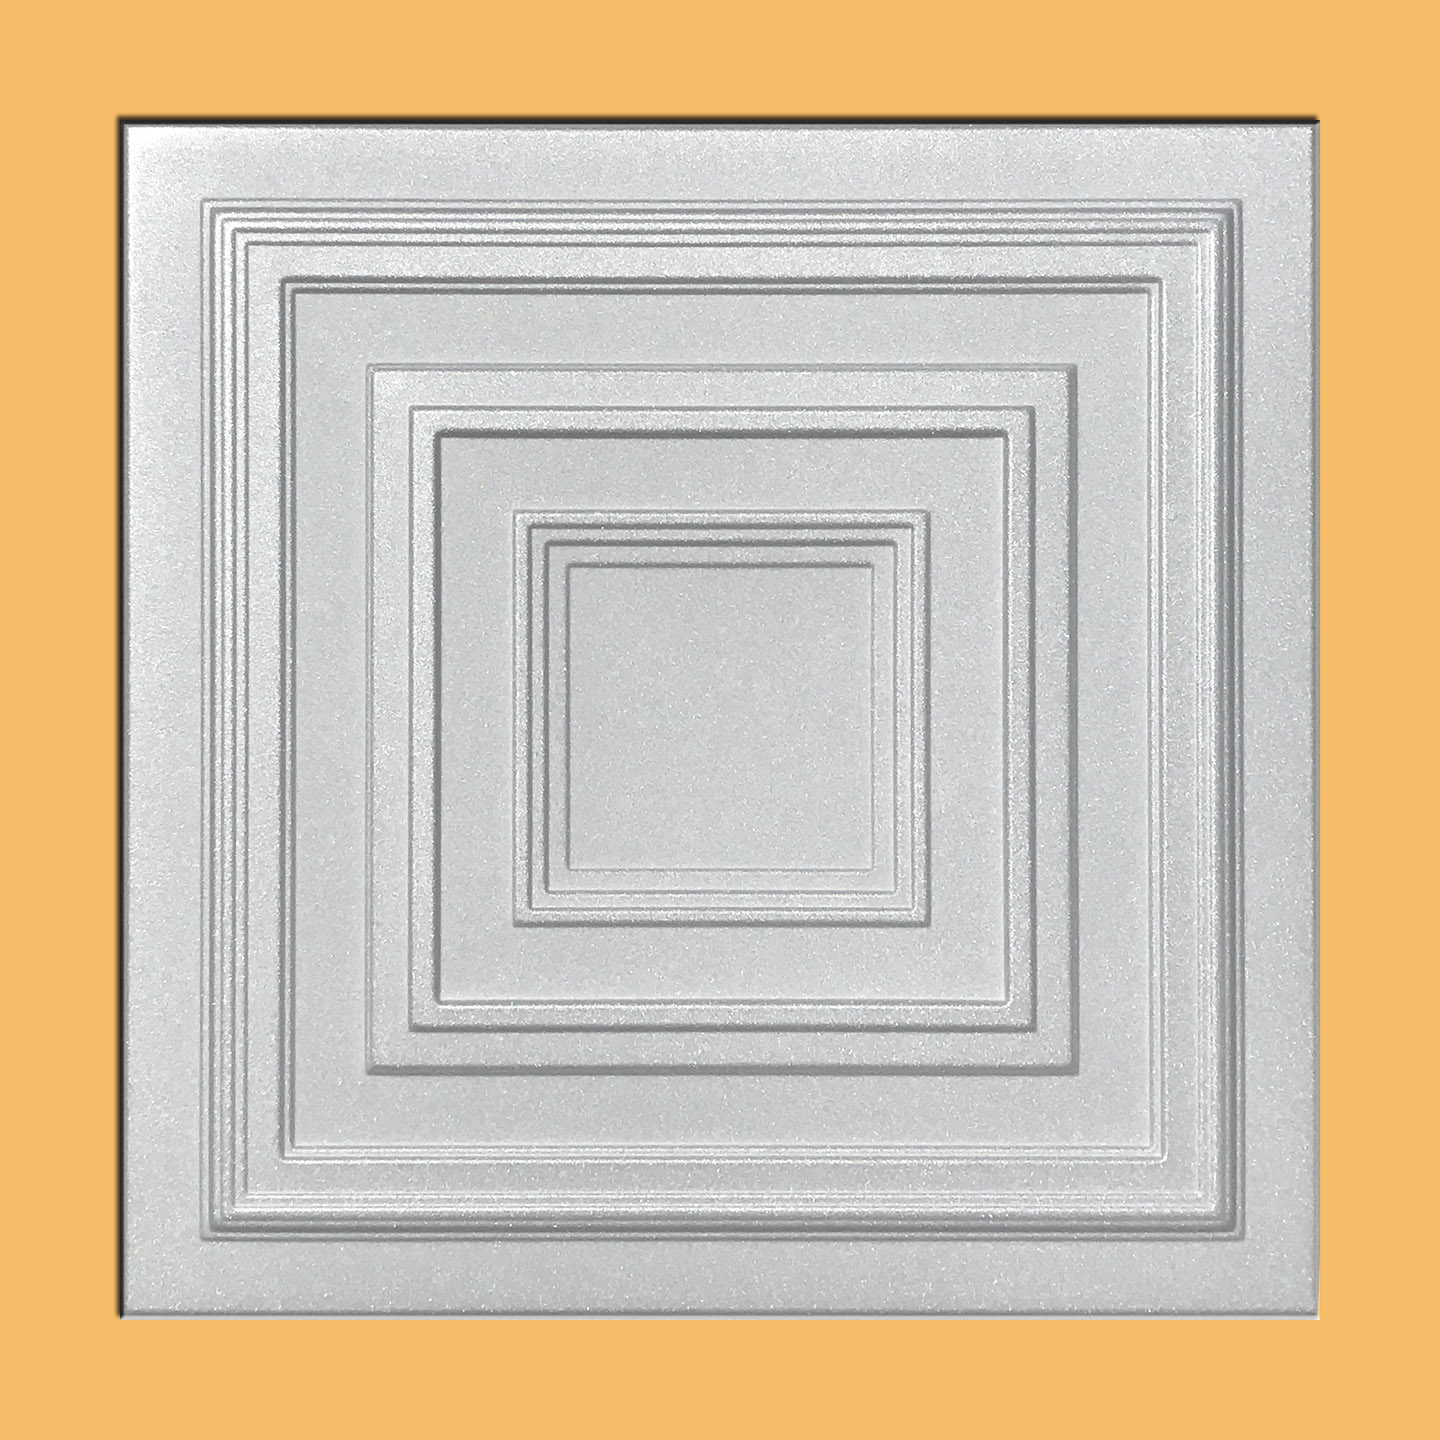 24x24 antique colors pvc tiles fire rated antique ceilings 20x20 antyx white tile ceiling tiles r31 back order dailygadgetfo Gallery